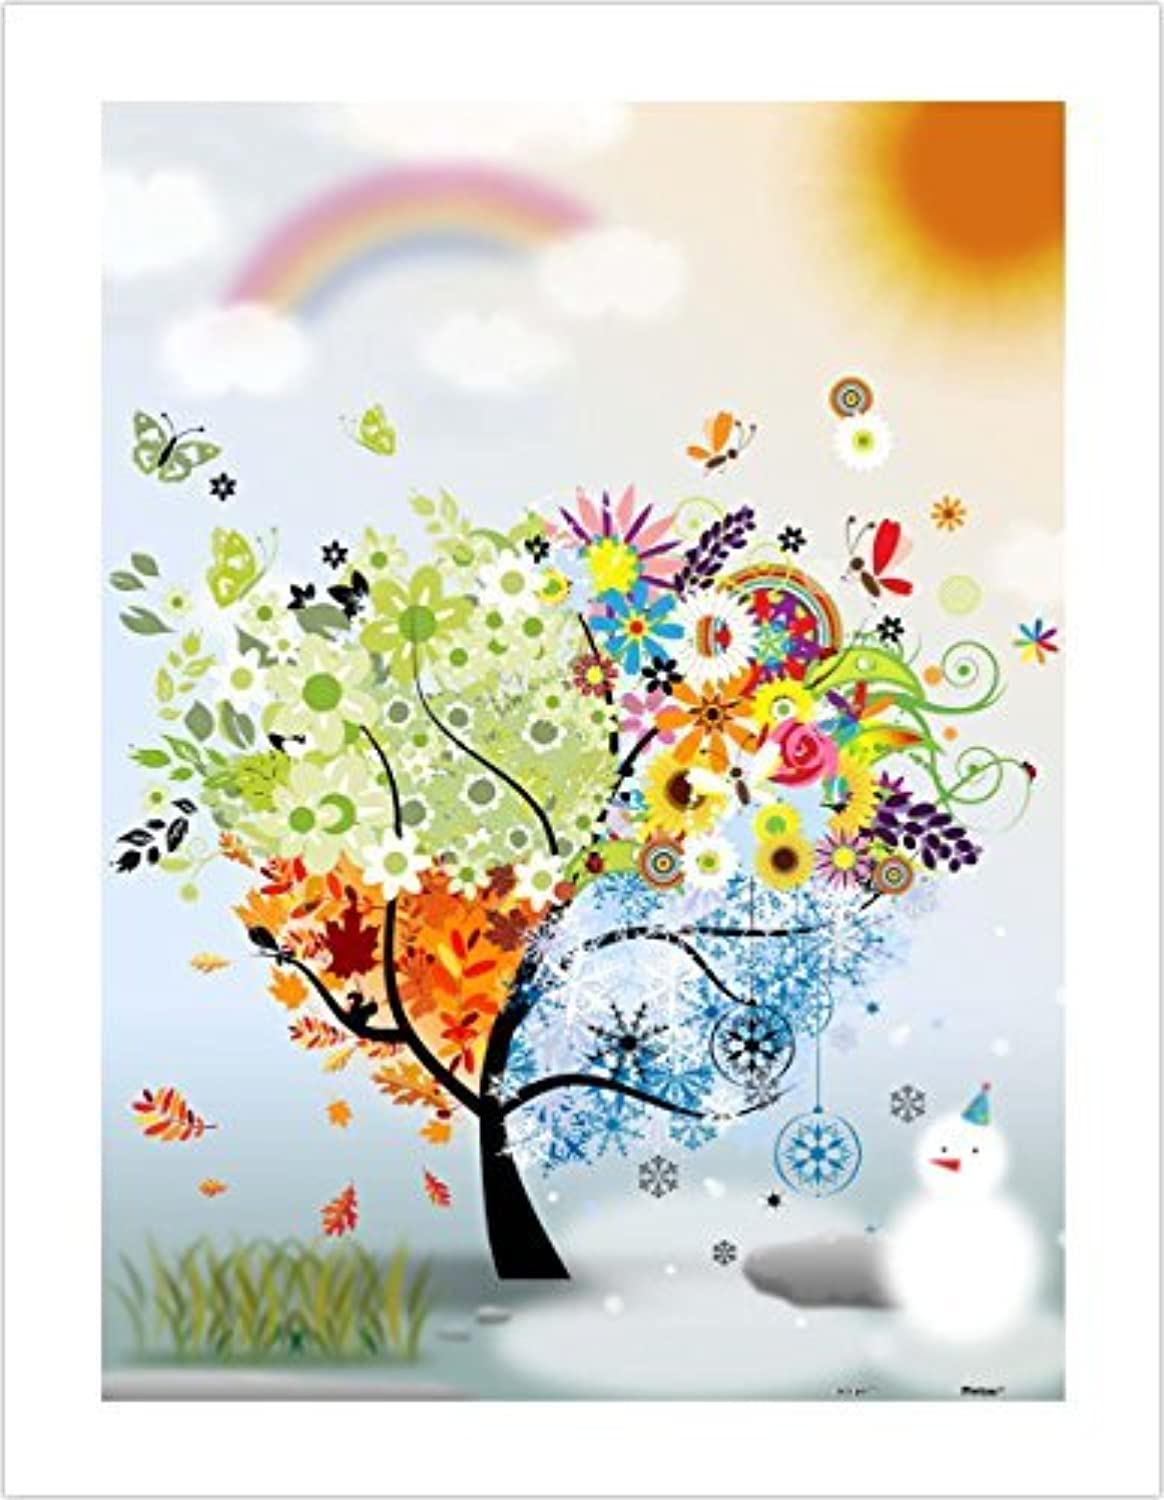 Pintoo  H1531  The Tree of Hope  300 Piece Plastic Puzzle by Pintoo